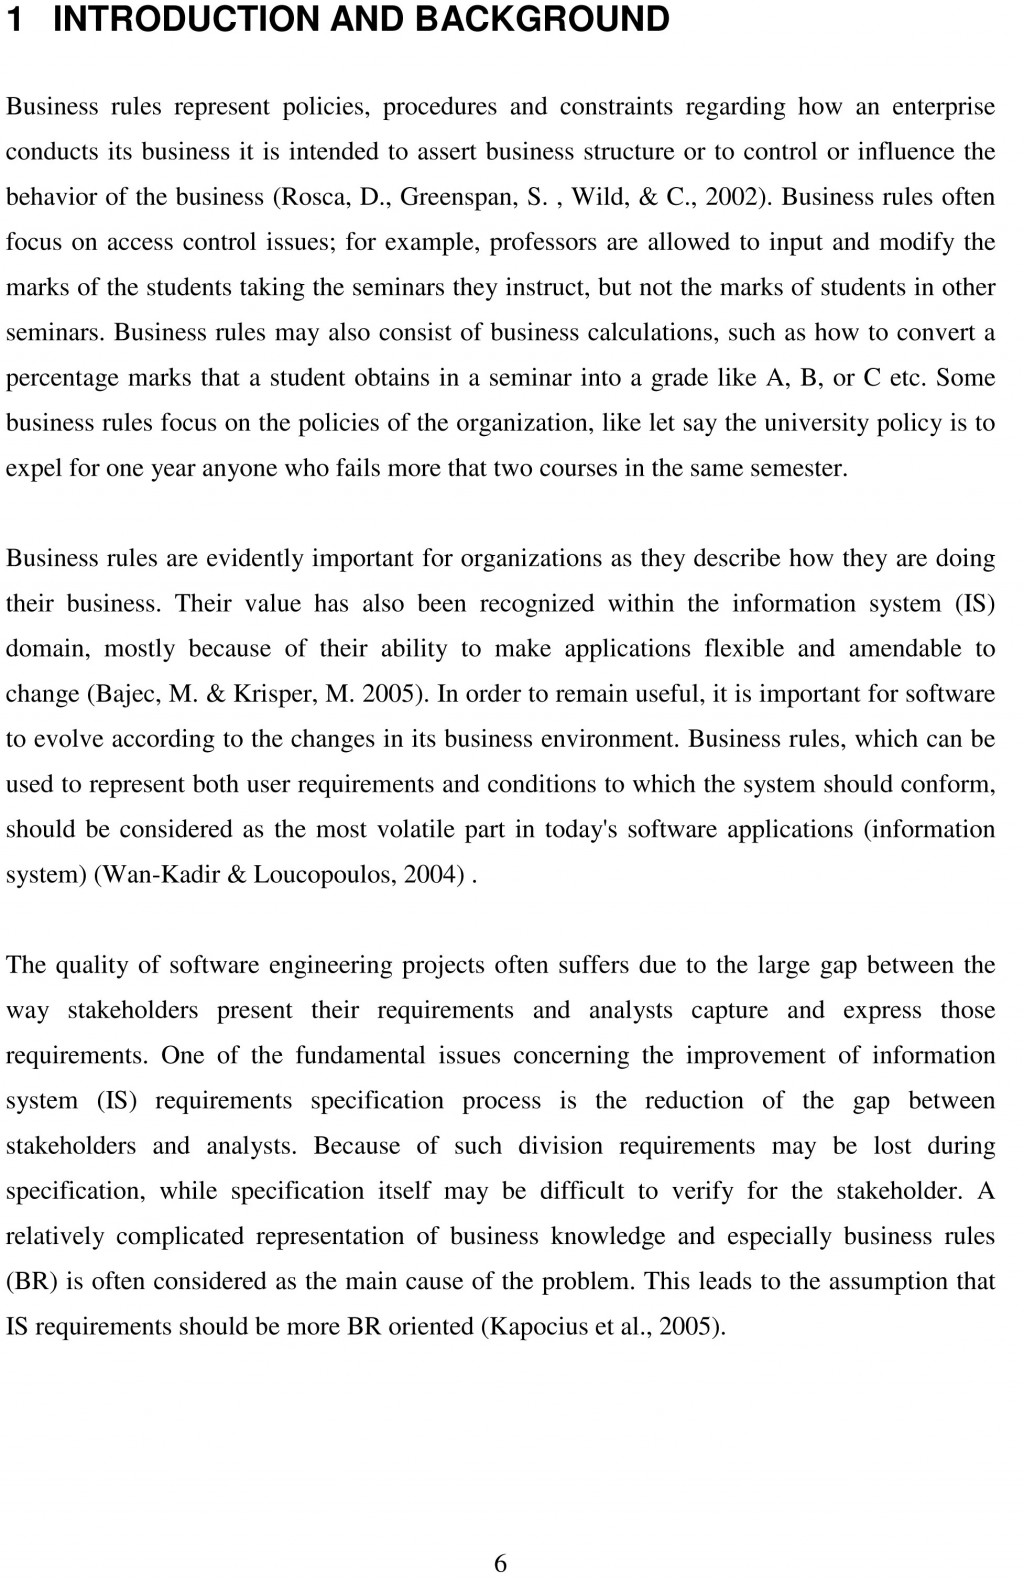 016 Research Paper Argumentative Thesis Examples Quality Free Best Large